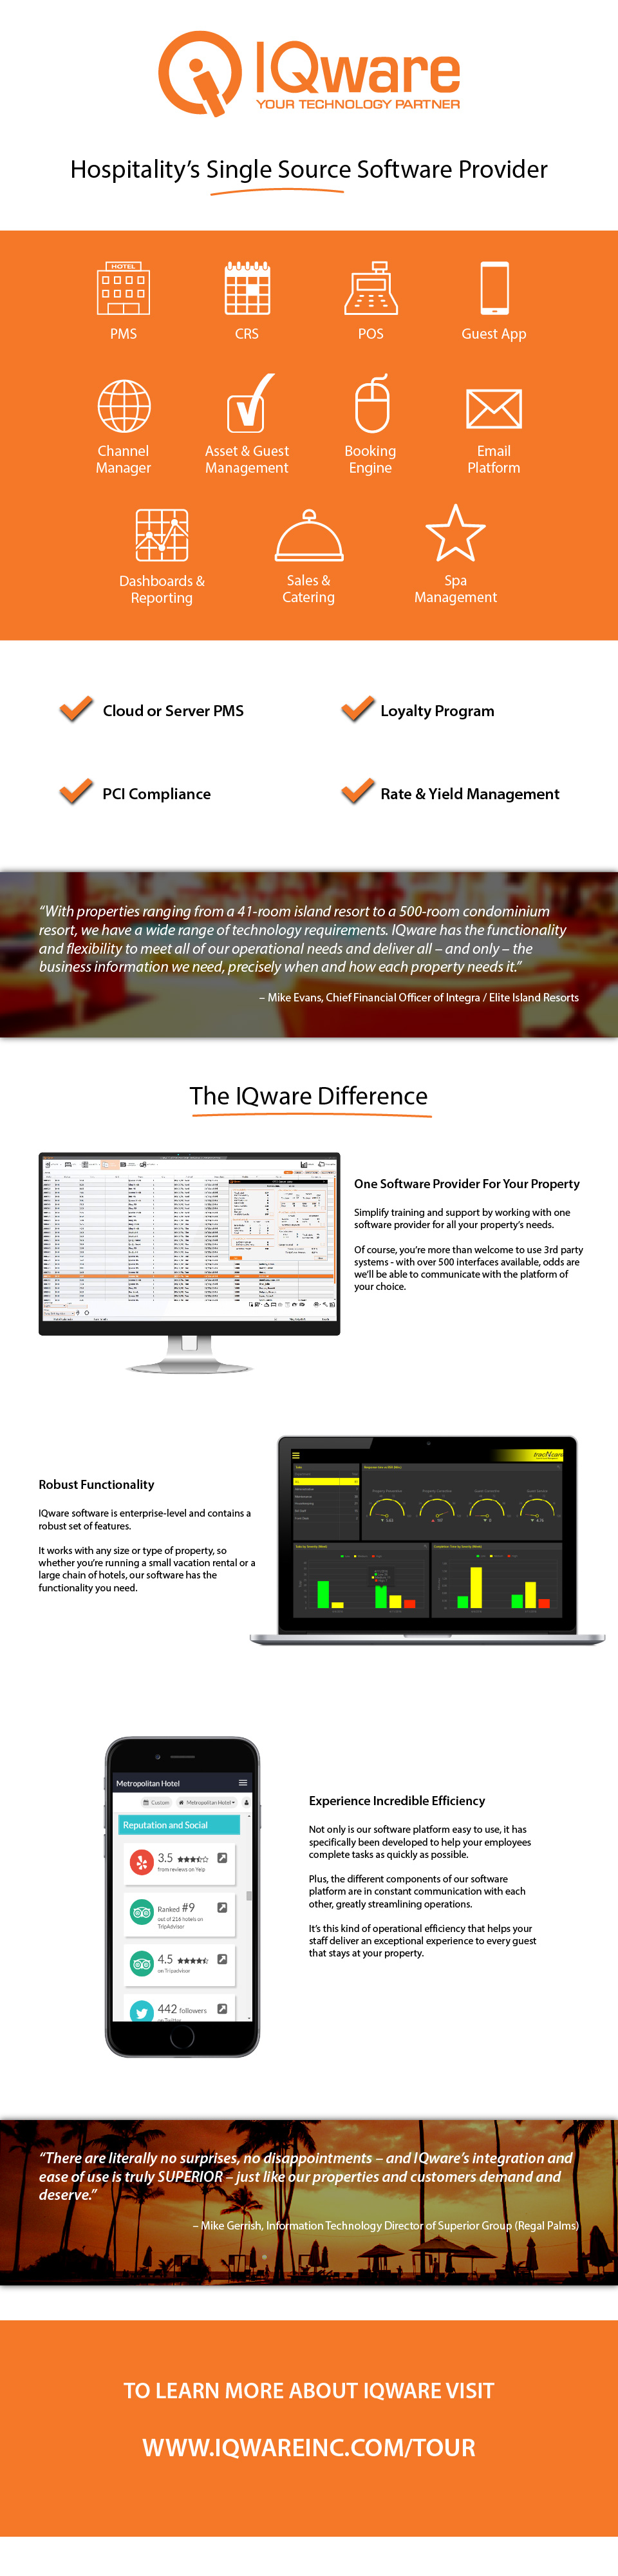 About IQware Software